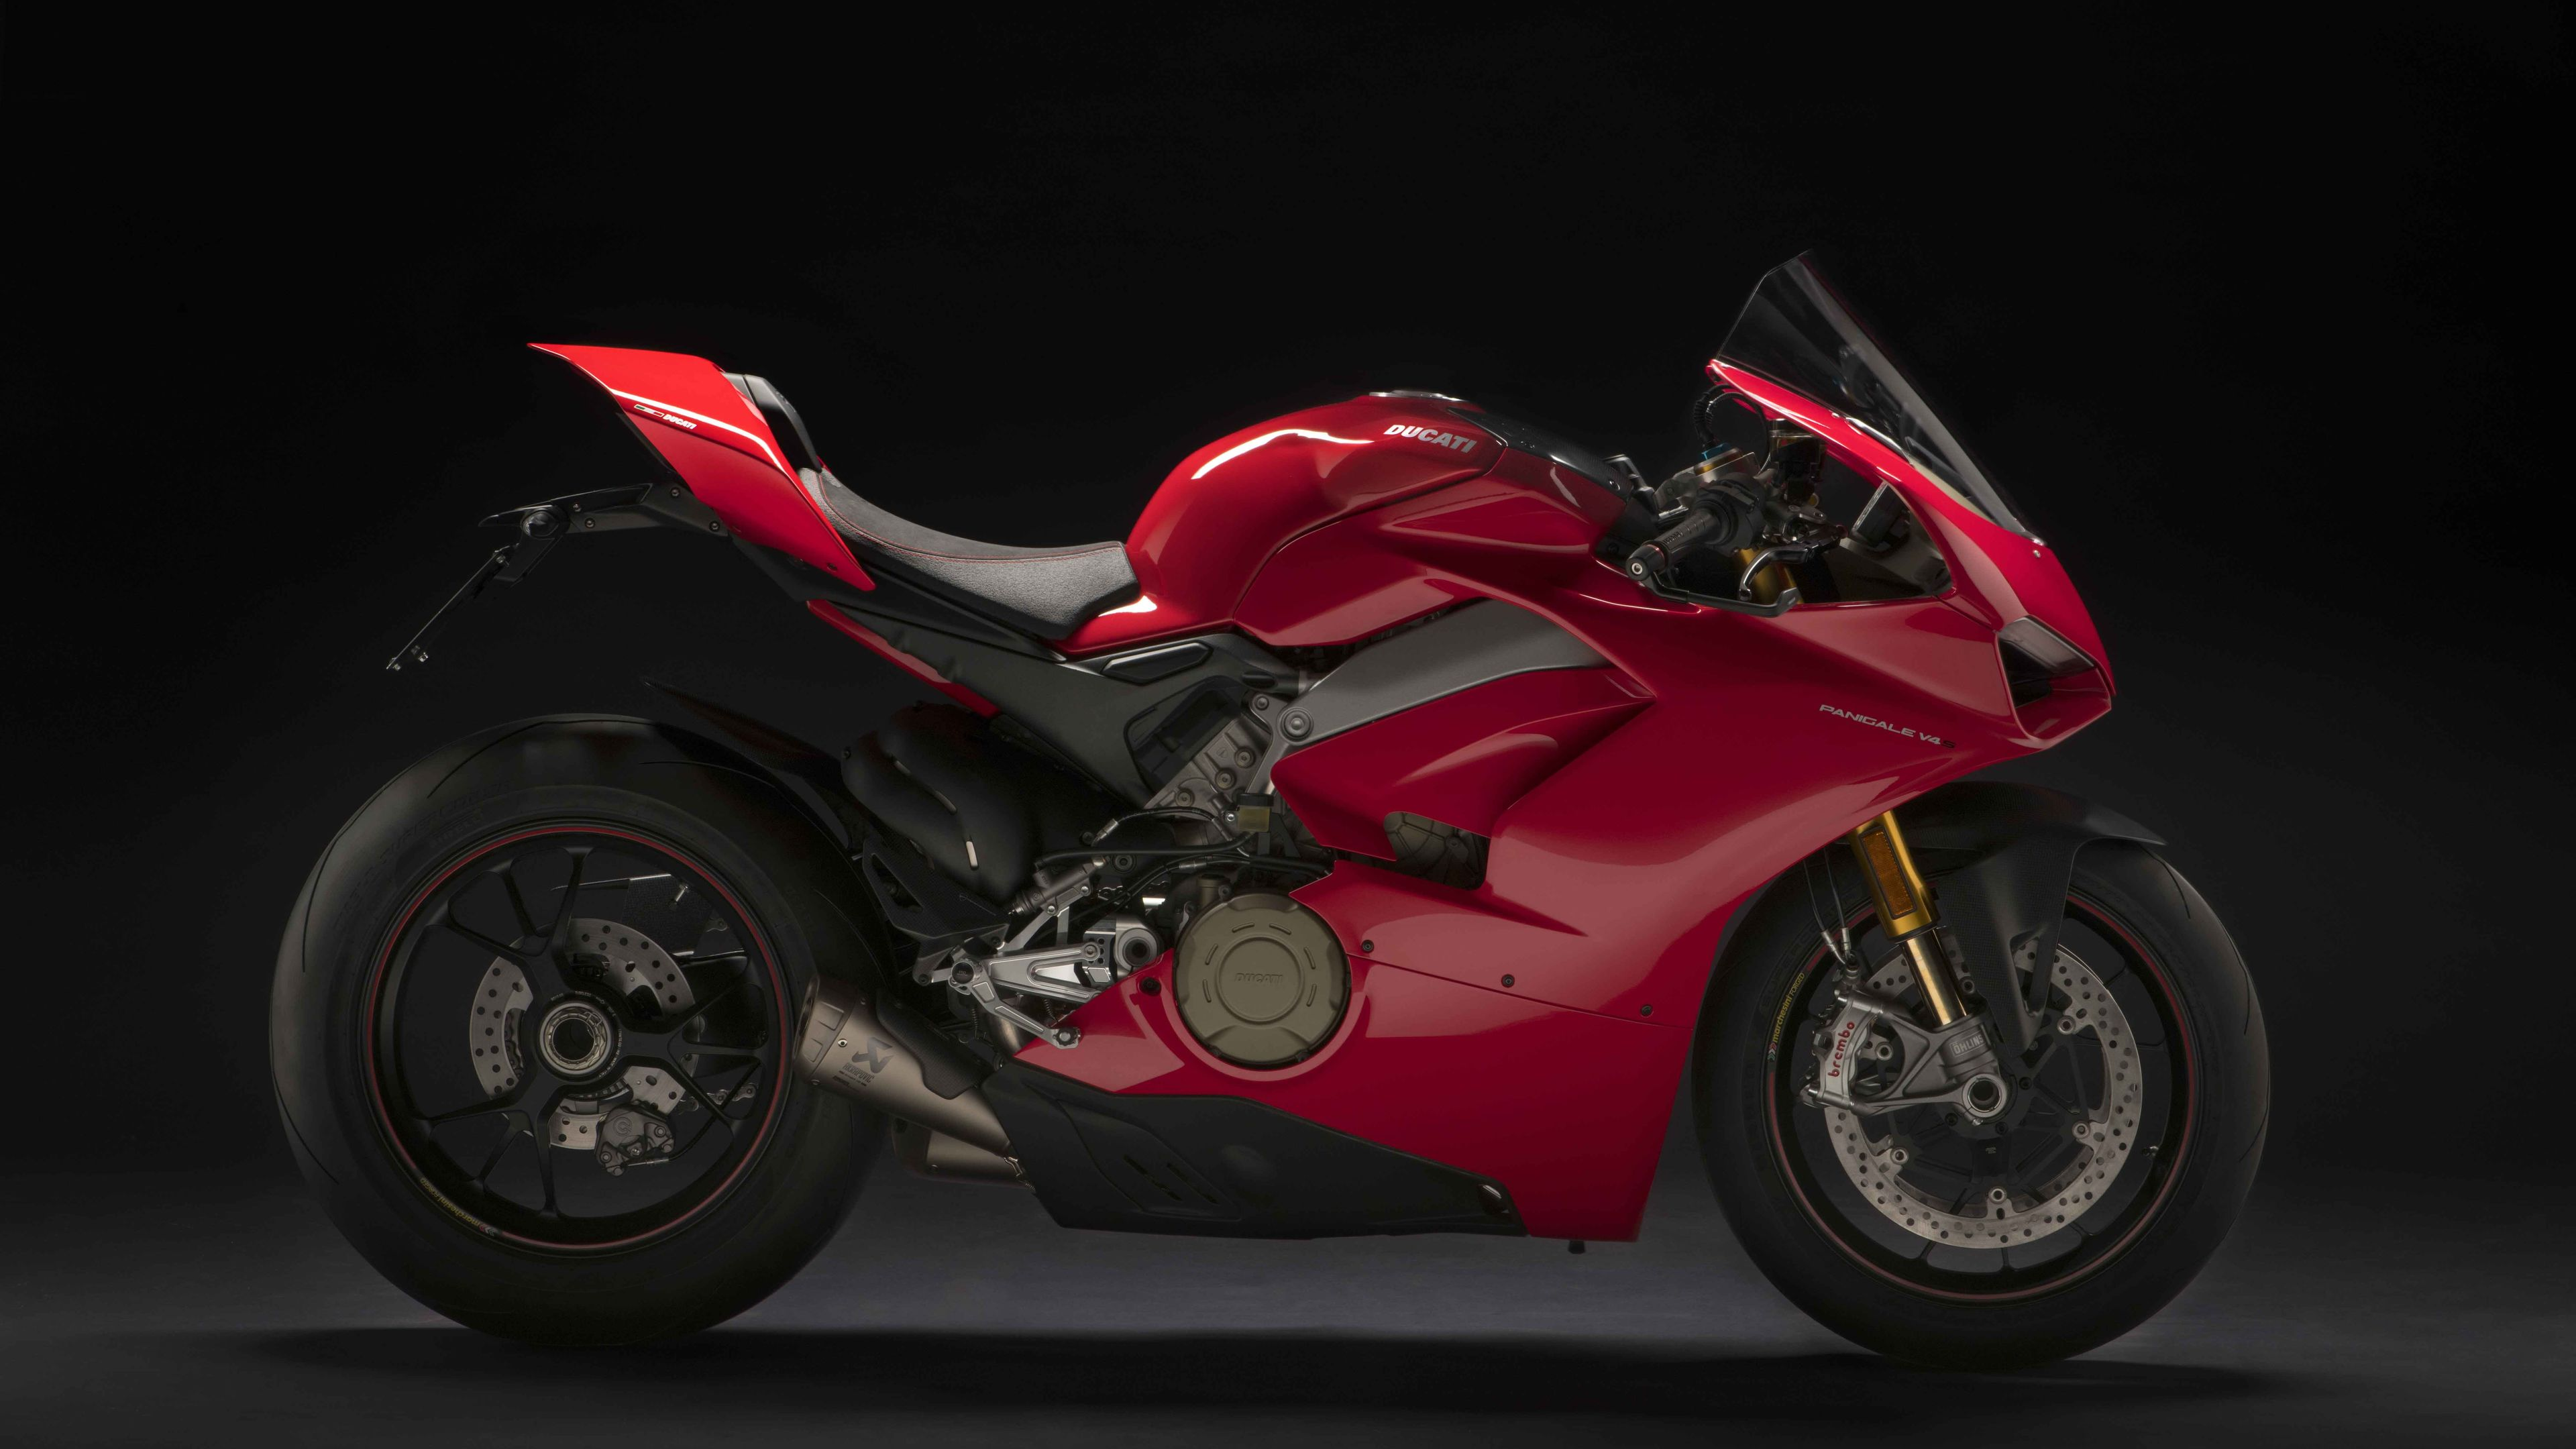 ducati panigale v4 4k 1547937828 - Ducati Panigale V4 4k - hd-wallpapers, ducati wallpapers, ducati panigale wallpapers, bikes wallpapers, 8k wallpapers, 5k wallpapers, 4k-wallpapers, 2018 bikes wallpapers